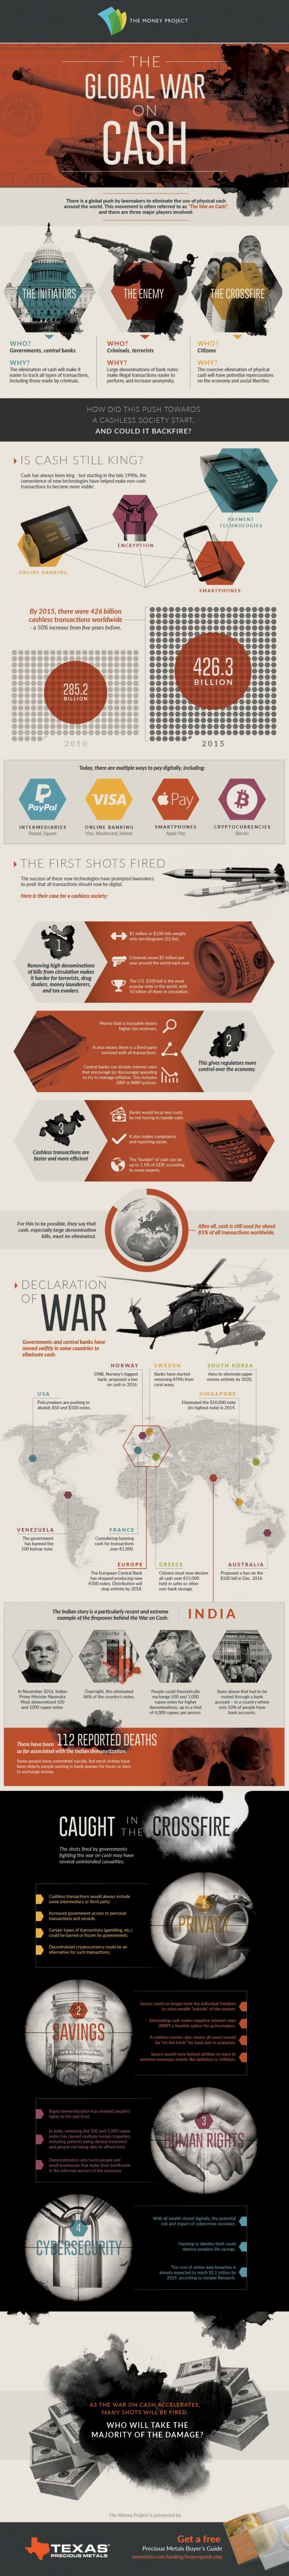 Global War On Cash's infographic